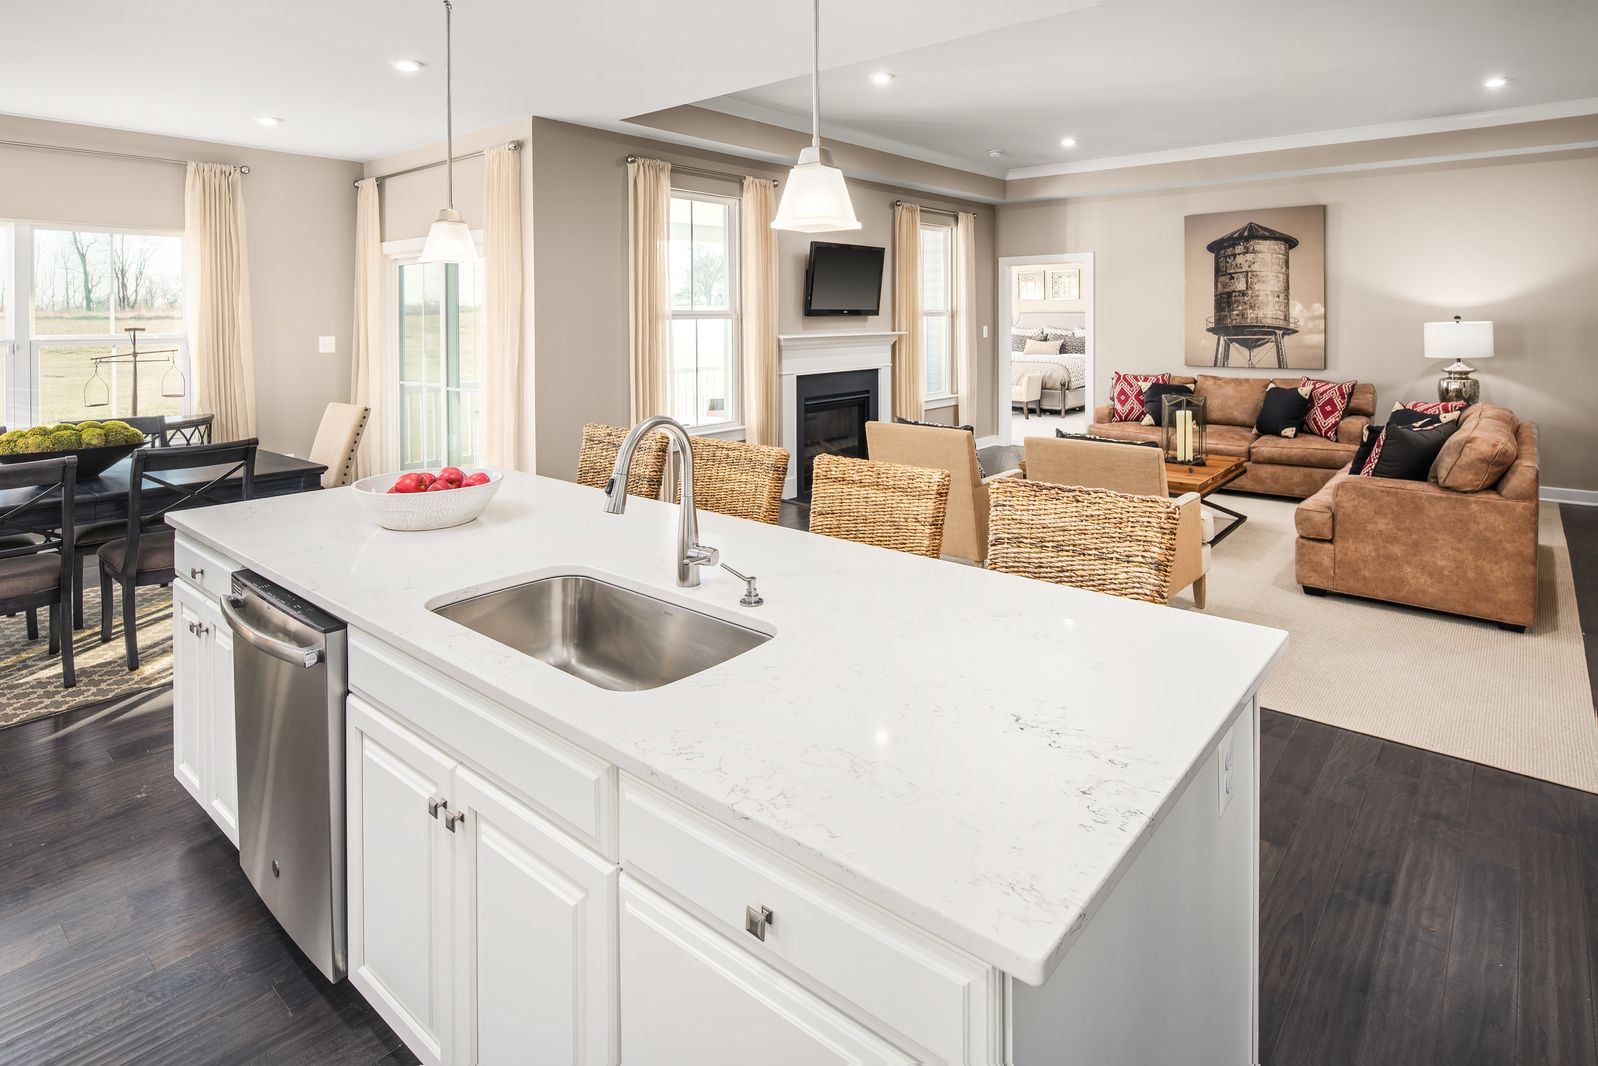 Living Area featured in the Savannah Ranch By Ryan Homes in Sussex, DE